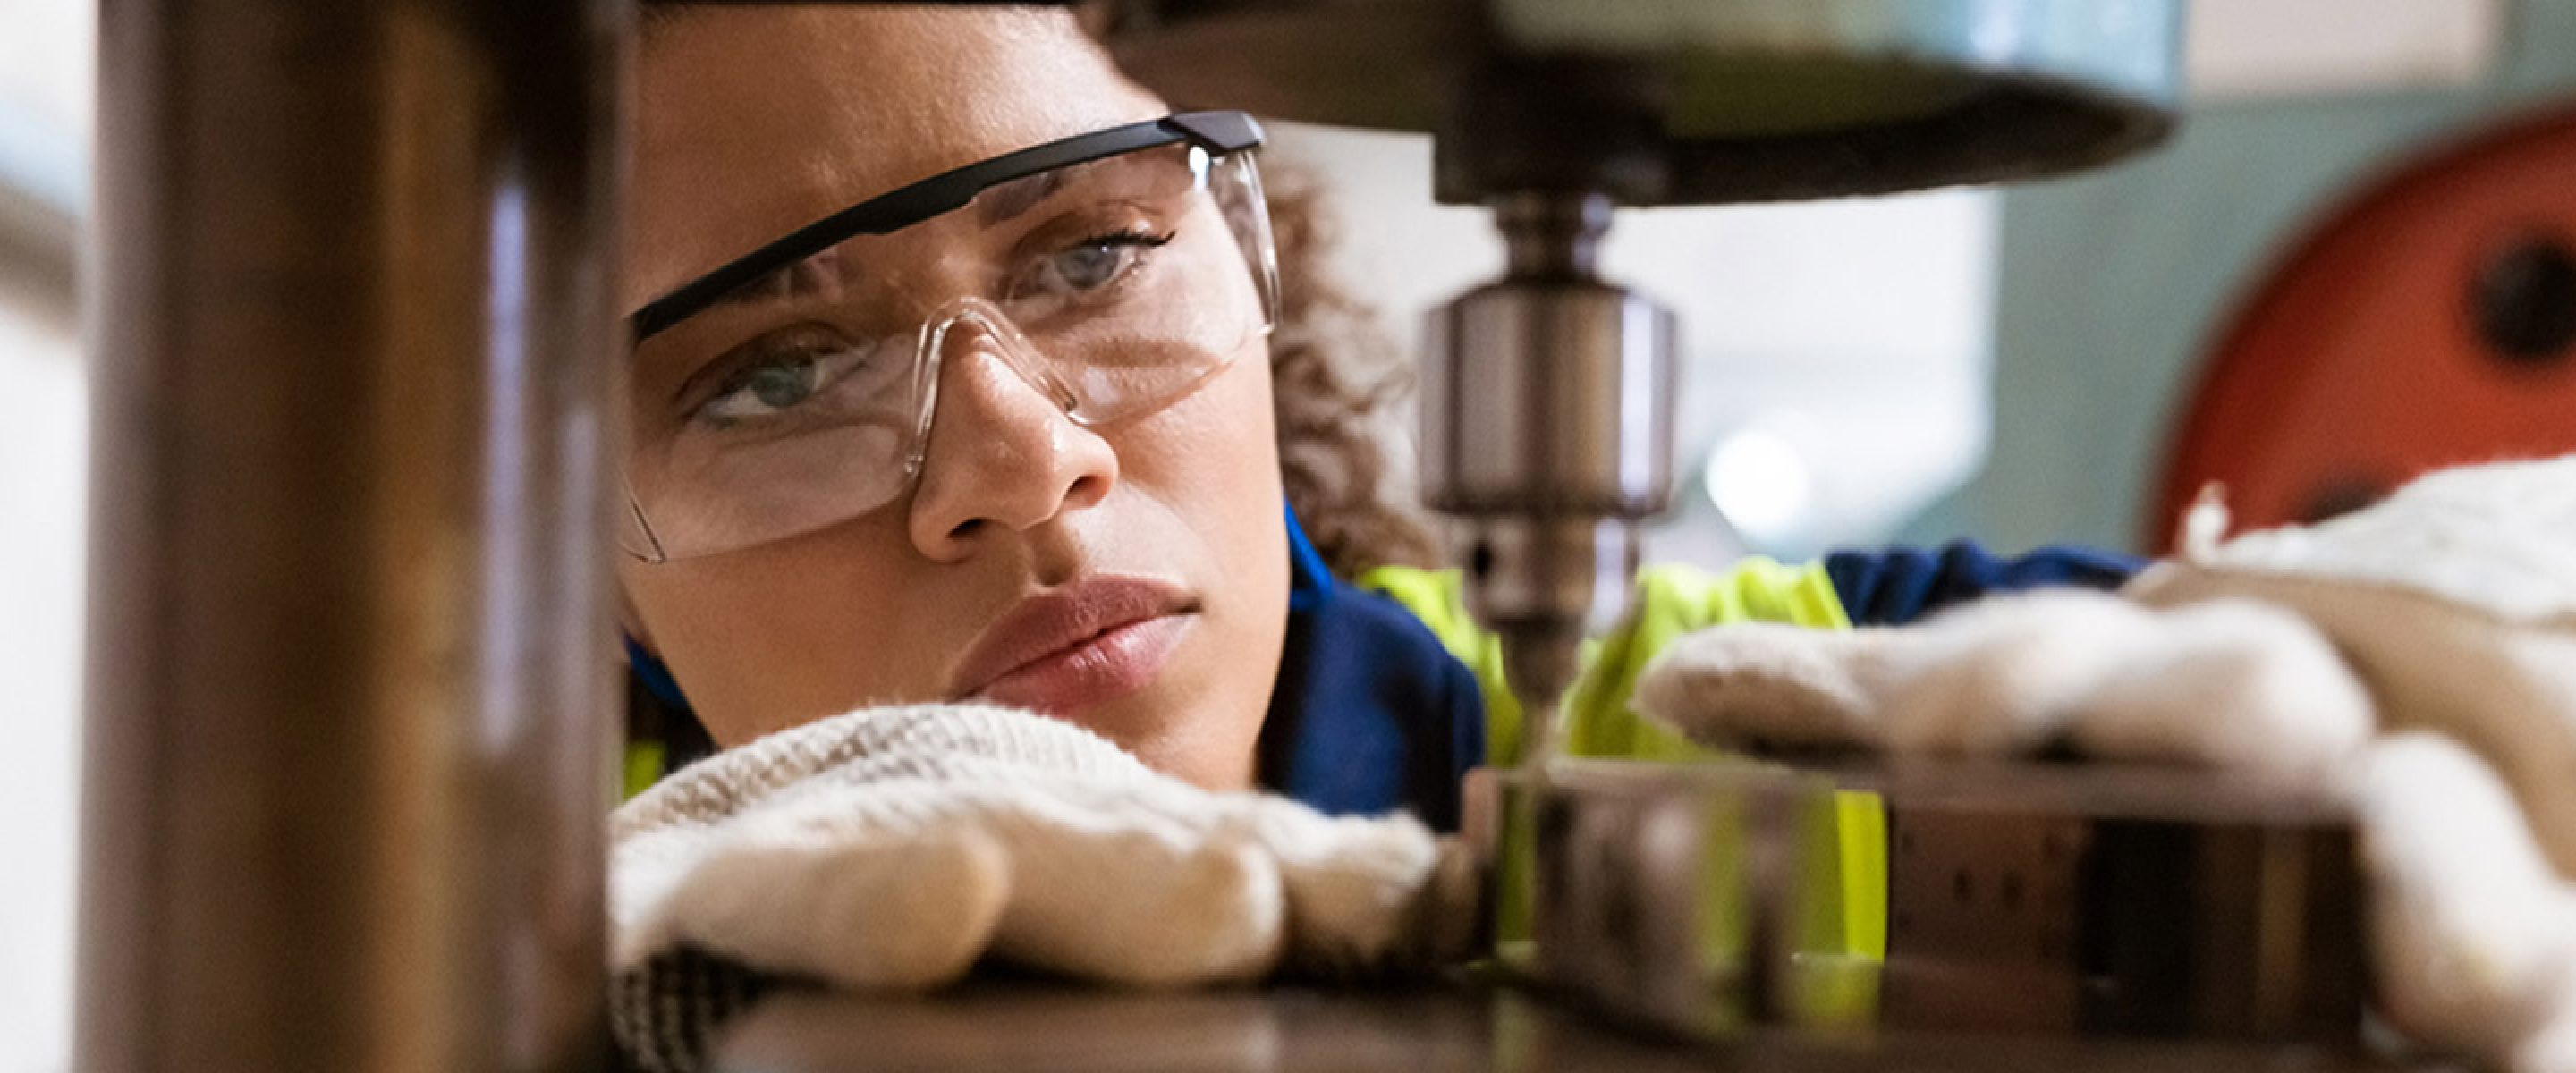 Closeup of female worker wearing safety glasses and working on a machine